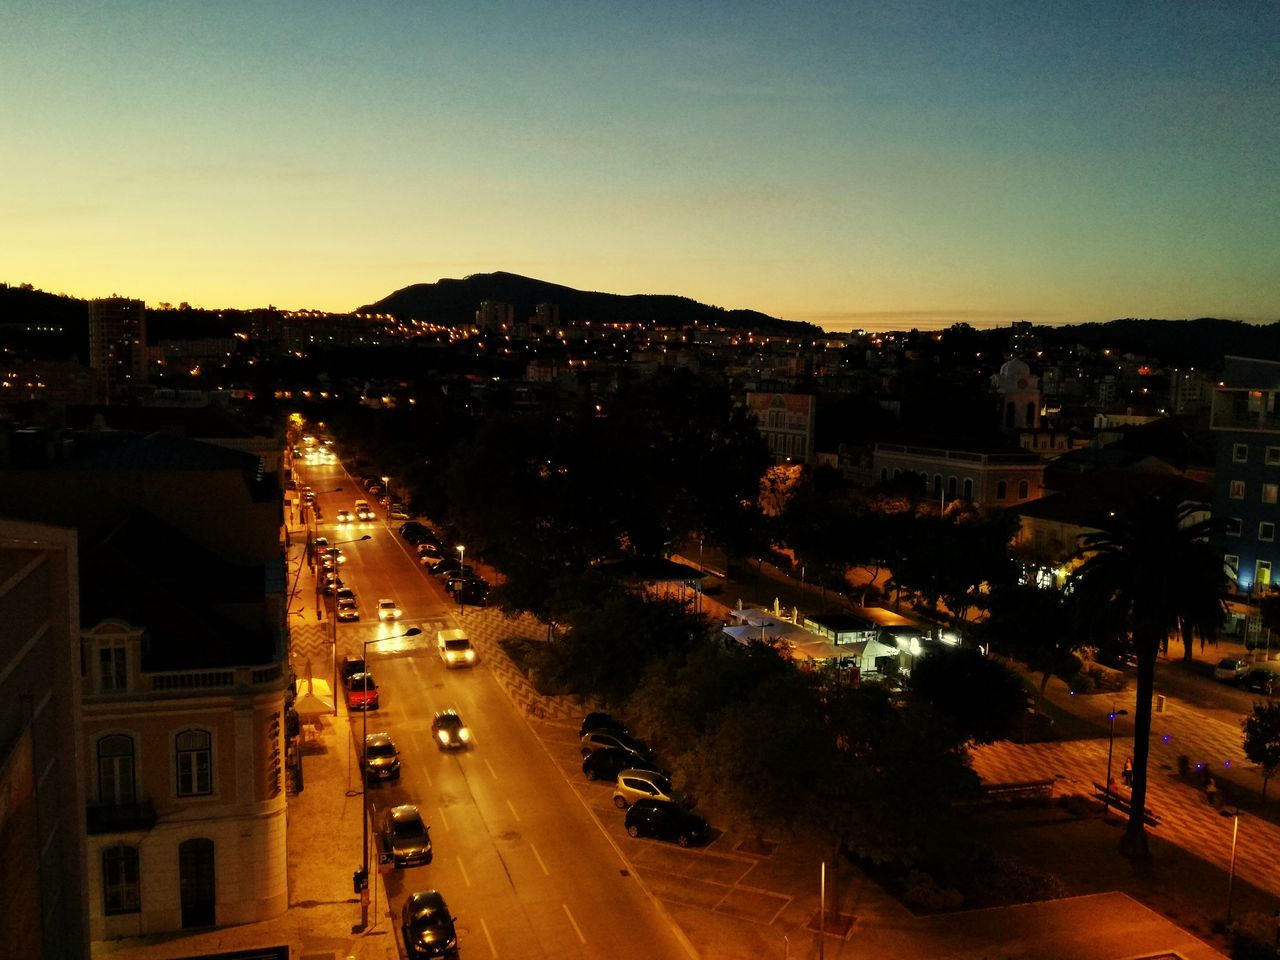 illuminated, transportation, architecture, building exterior, built structure, road, high angle view, outdoors, street light, no people, city, night, sky, clear sky, sunset, tree, cityscape, nature